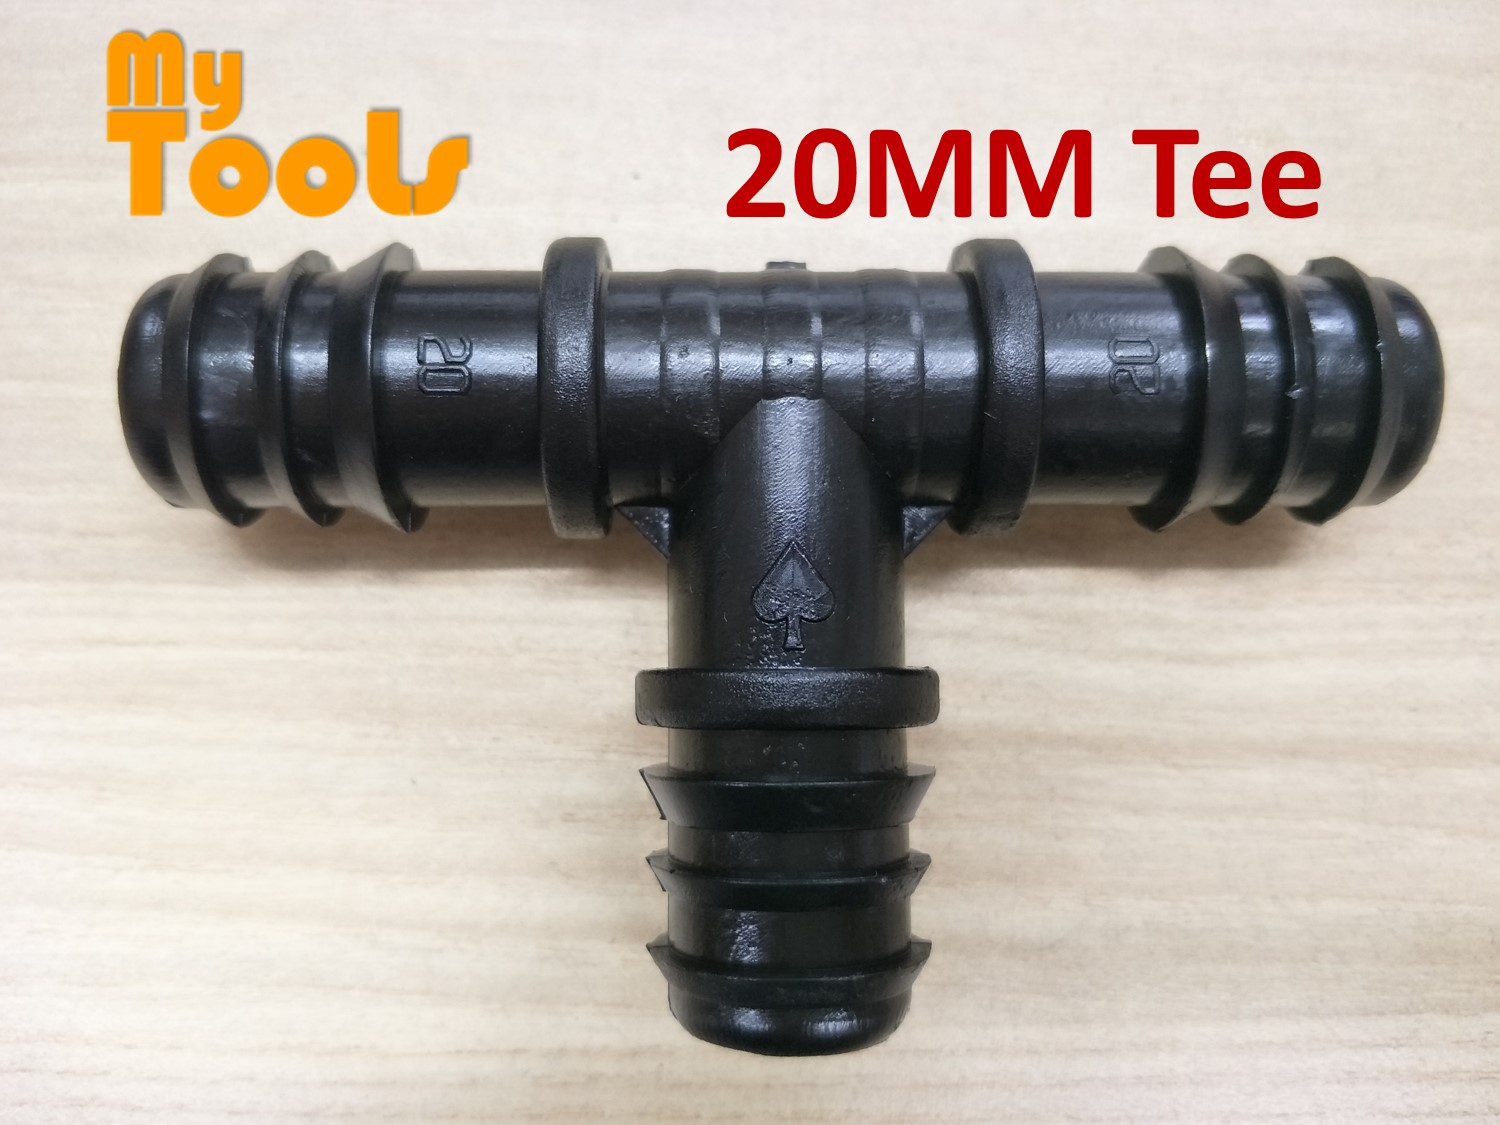 Mytools 20MM Equal Tee Irrigation Fitting Hydroponic Water Hose Connector Fertigasi